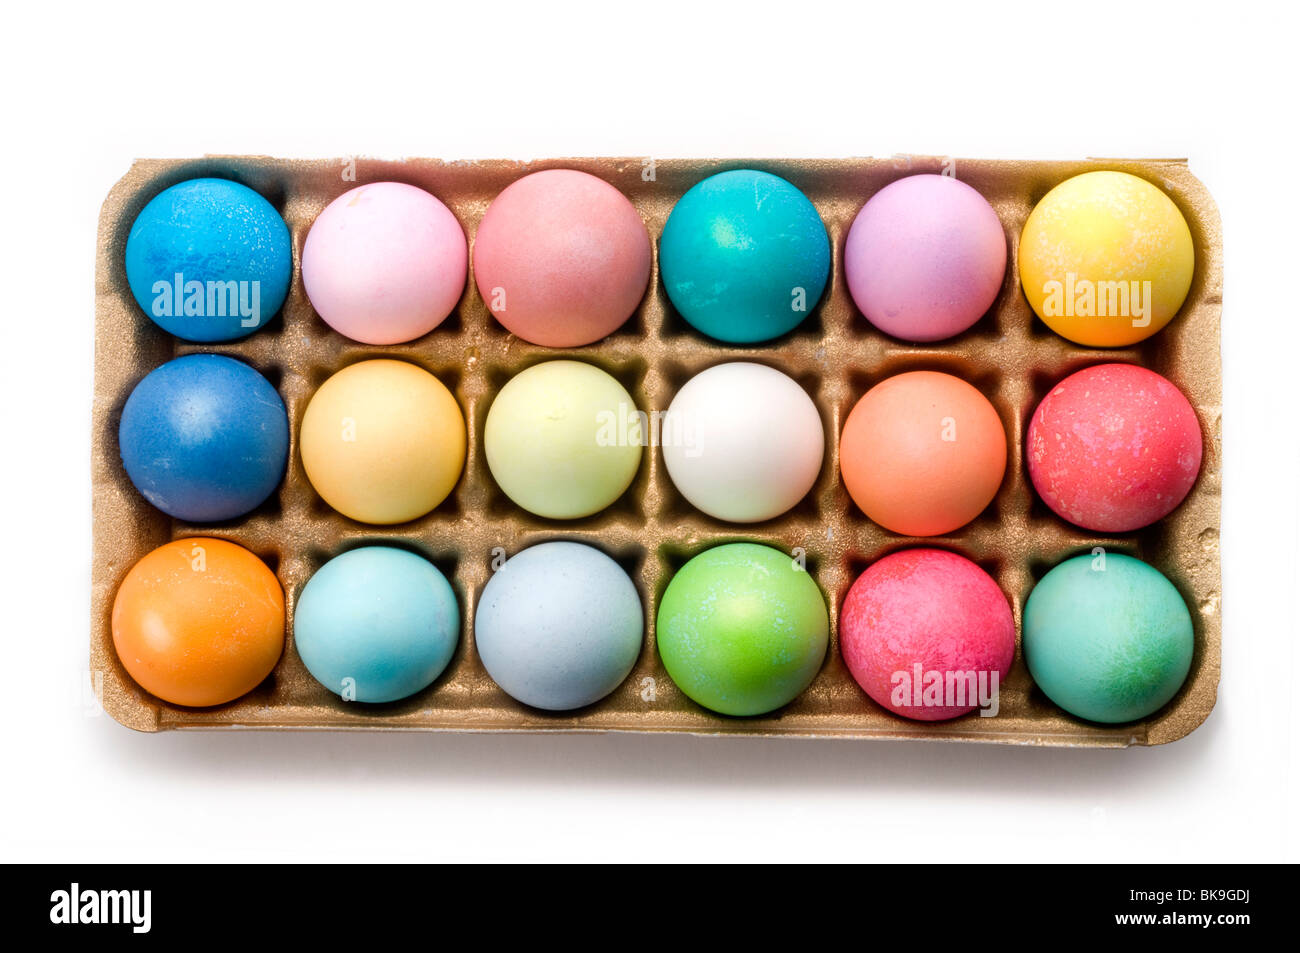 easter eggs colored eggs Stock Photo: 29099326 - Alamy